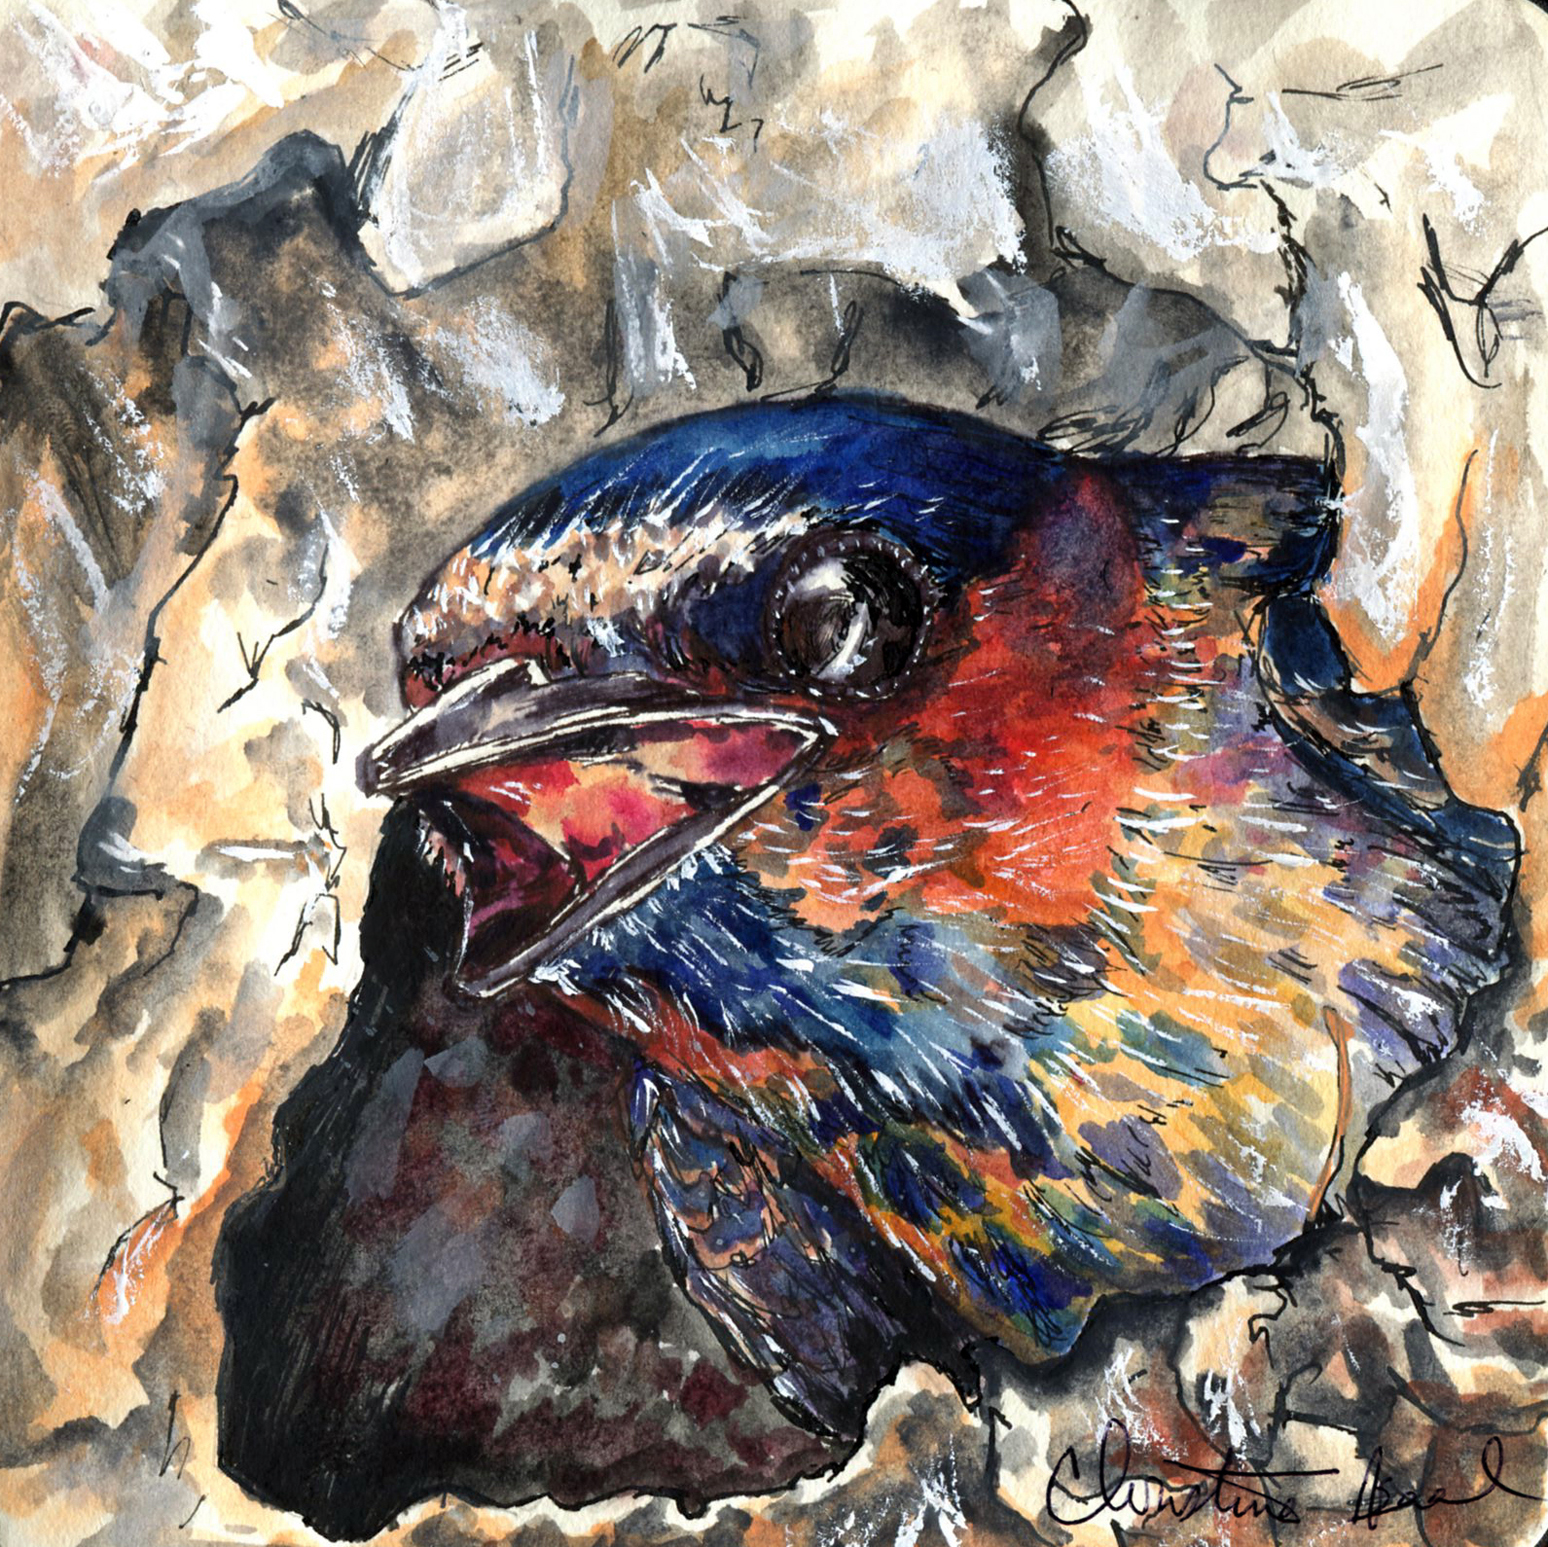 65. Cliff Swallow